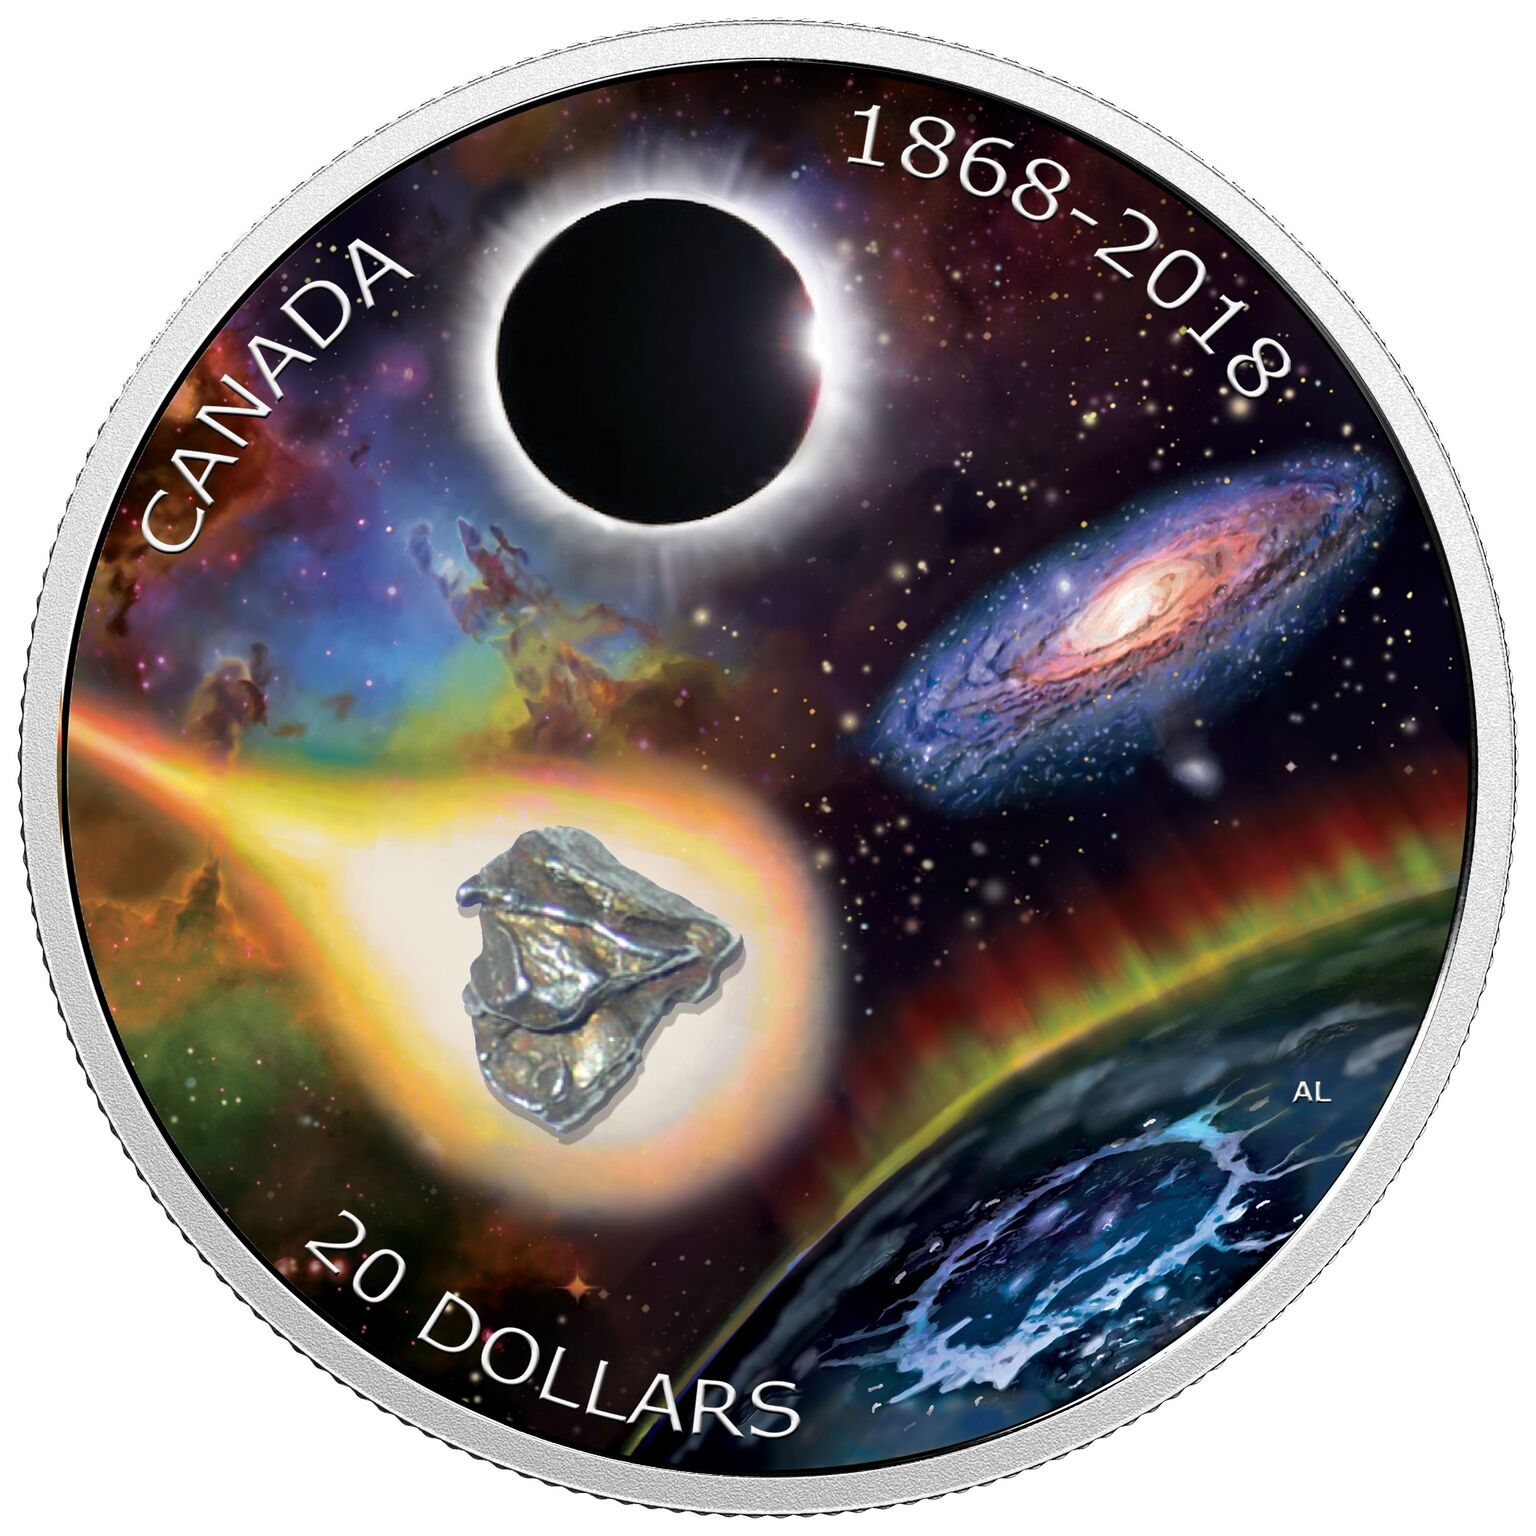 NEW SILVER COIN FROM THE ROYAL CANADIAN MINT FEATURES METEORITE FRAGMENT